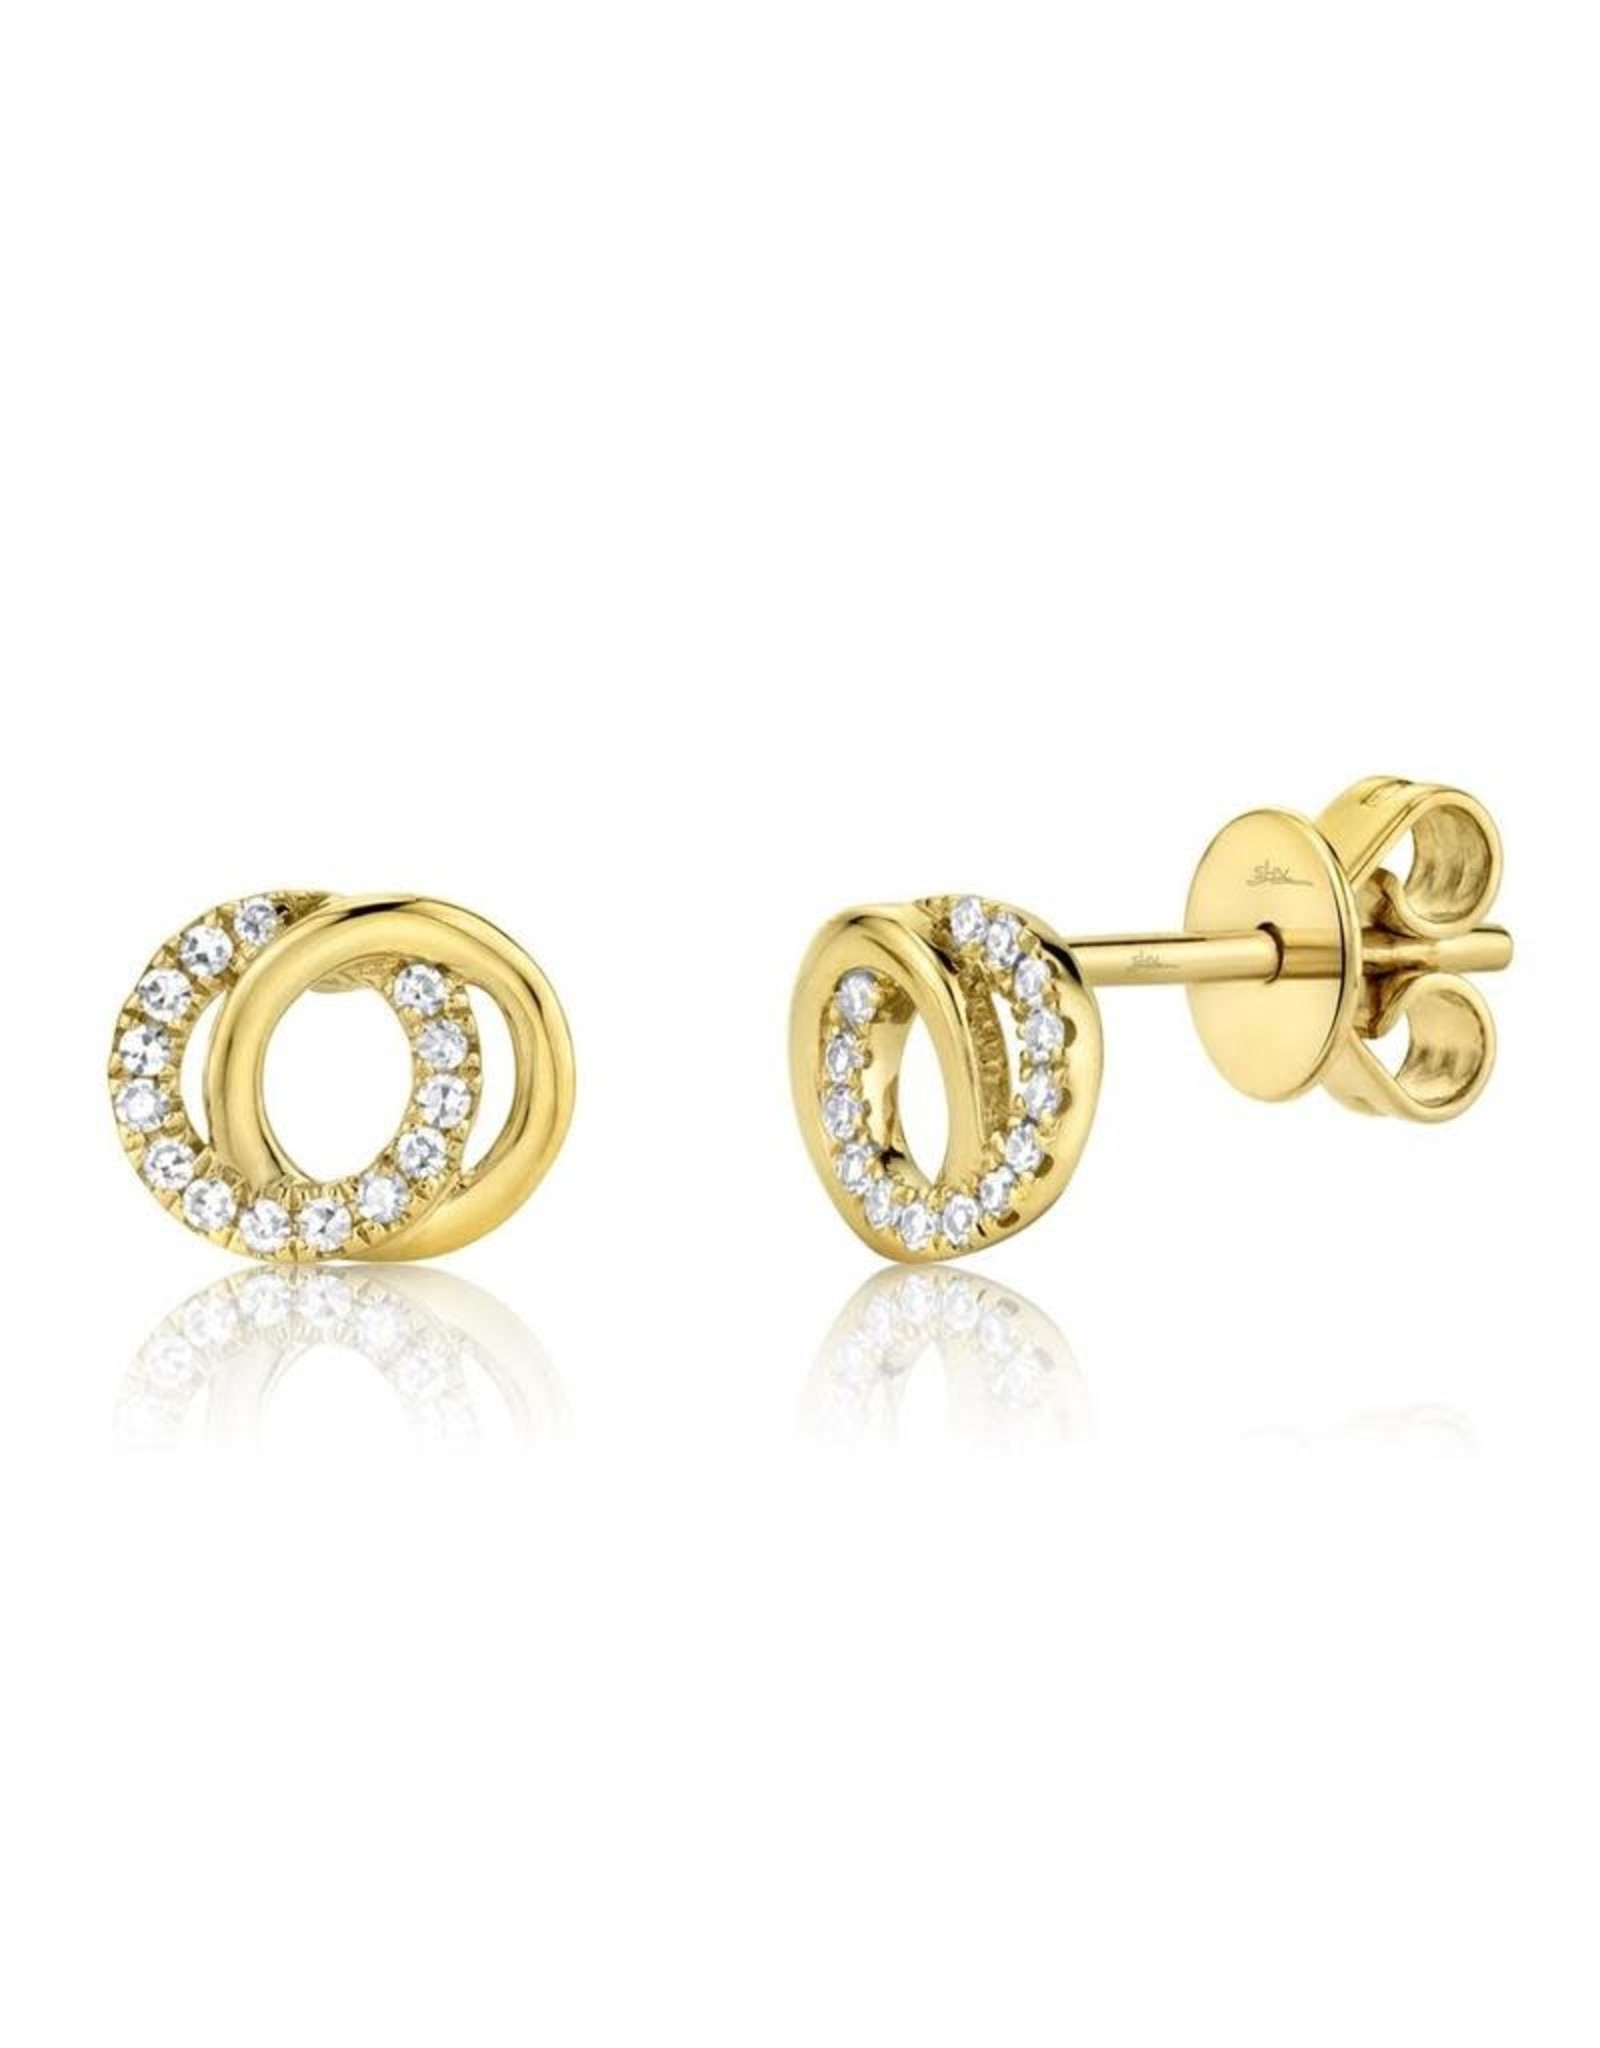 14K Yellow Gold Diamond Love Knot Stud Earrings, D: 0.09cts